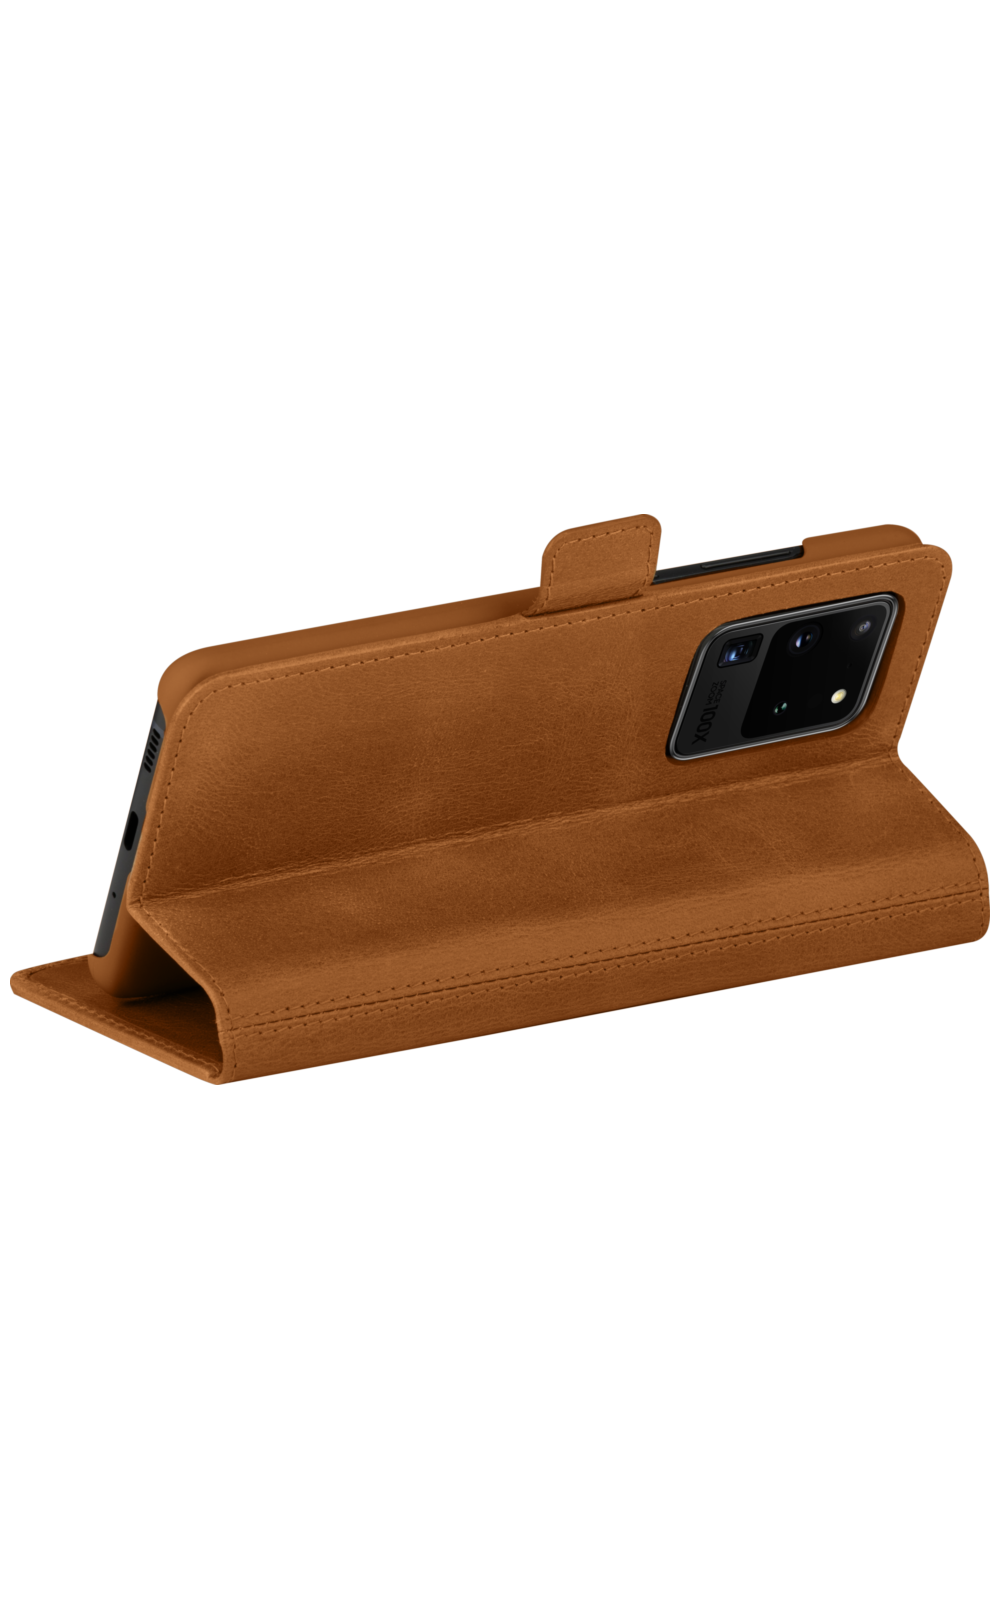 dbramante1928 full-grain leather cover Samsung S20 Ultra